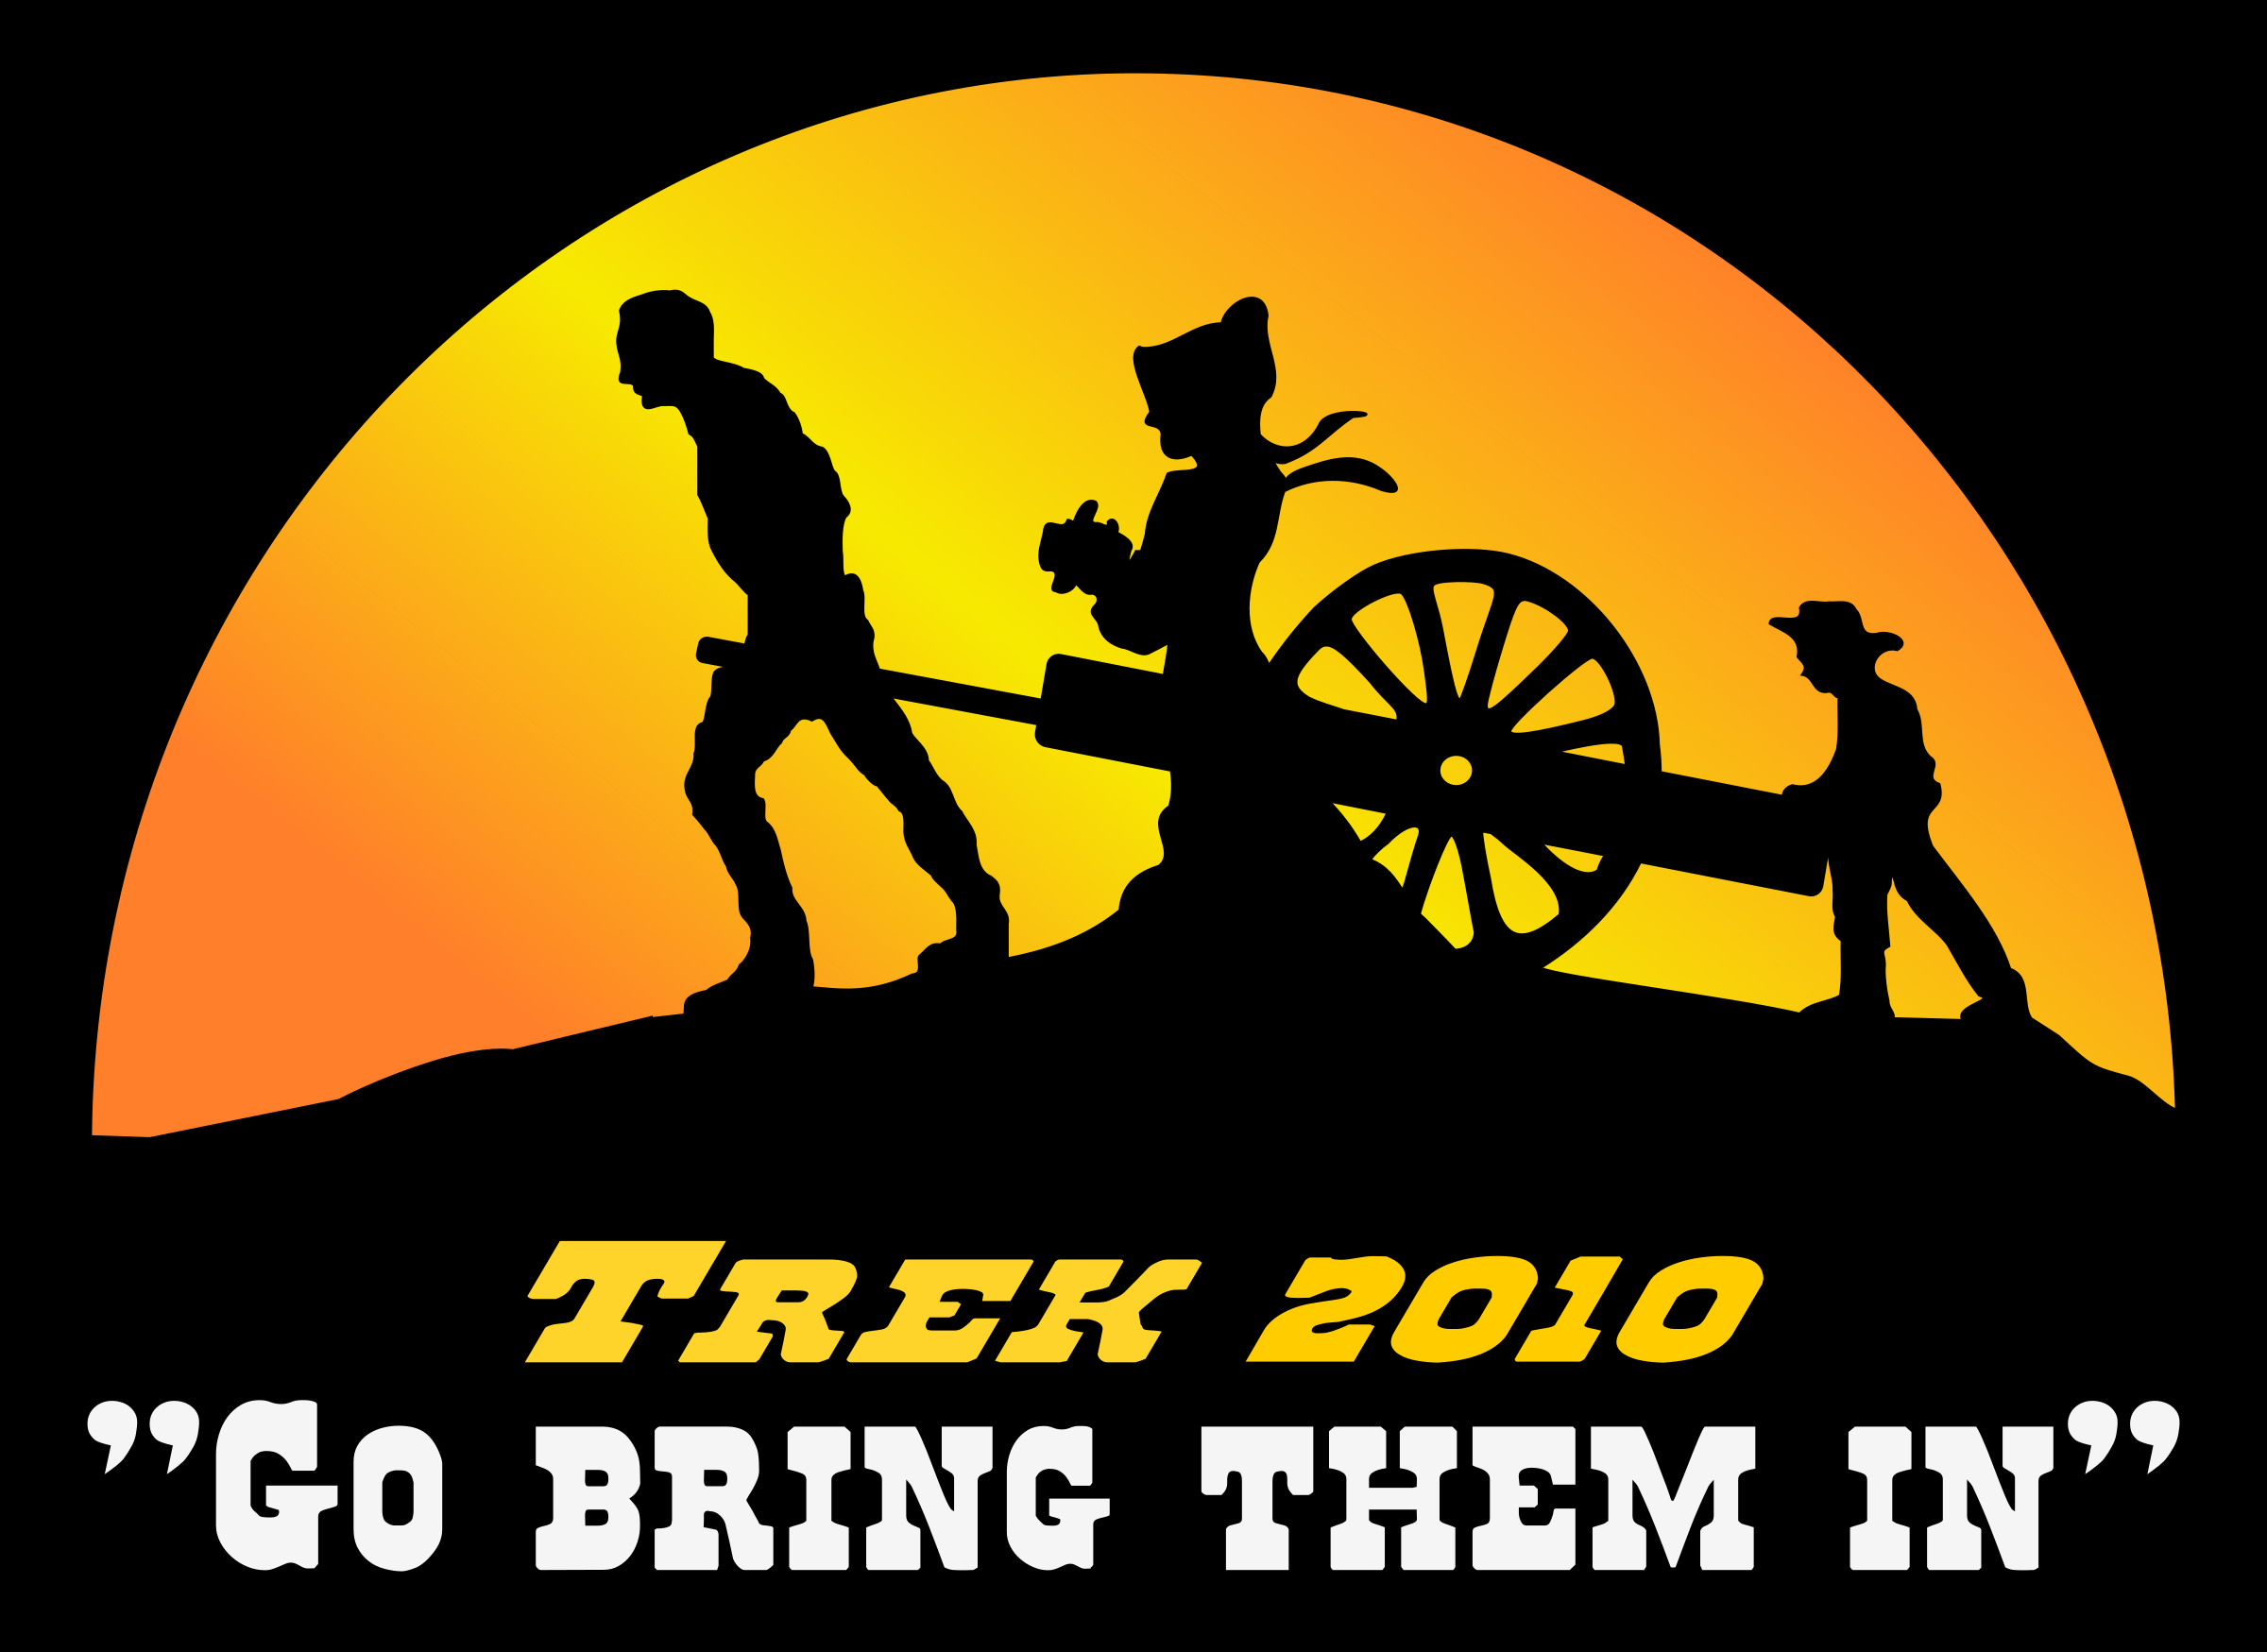 Pioneer Trek Logo Color by Jack_Rabbit